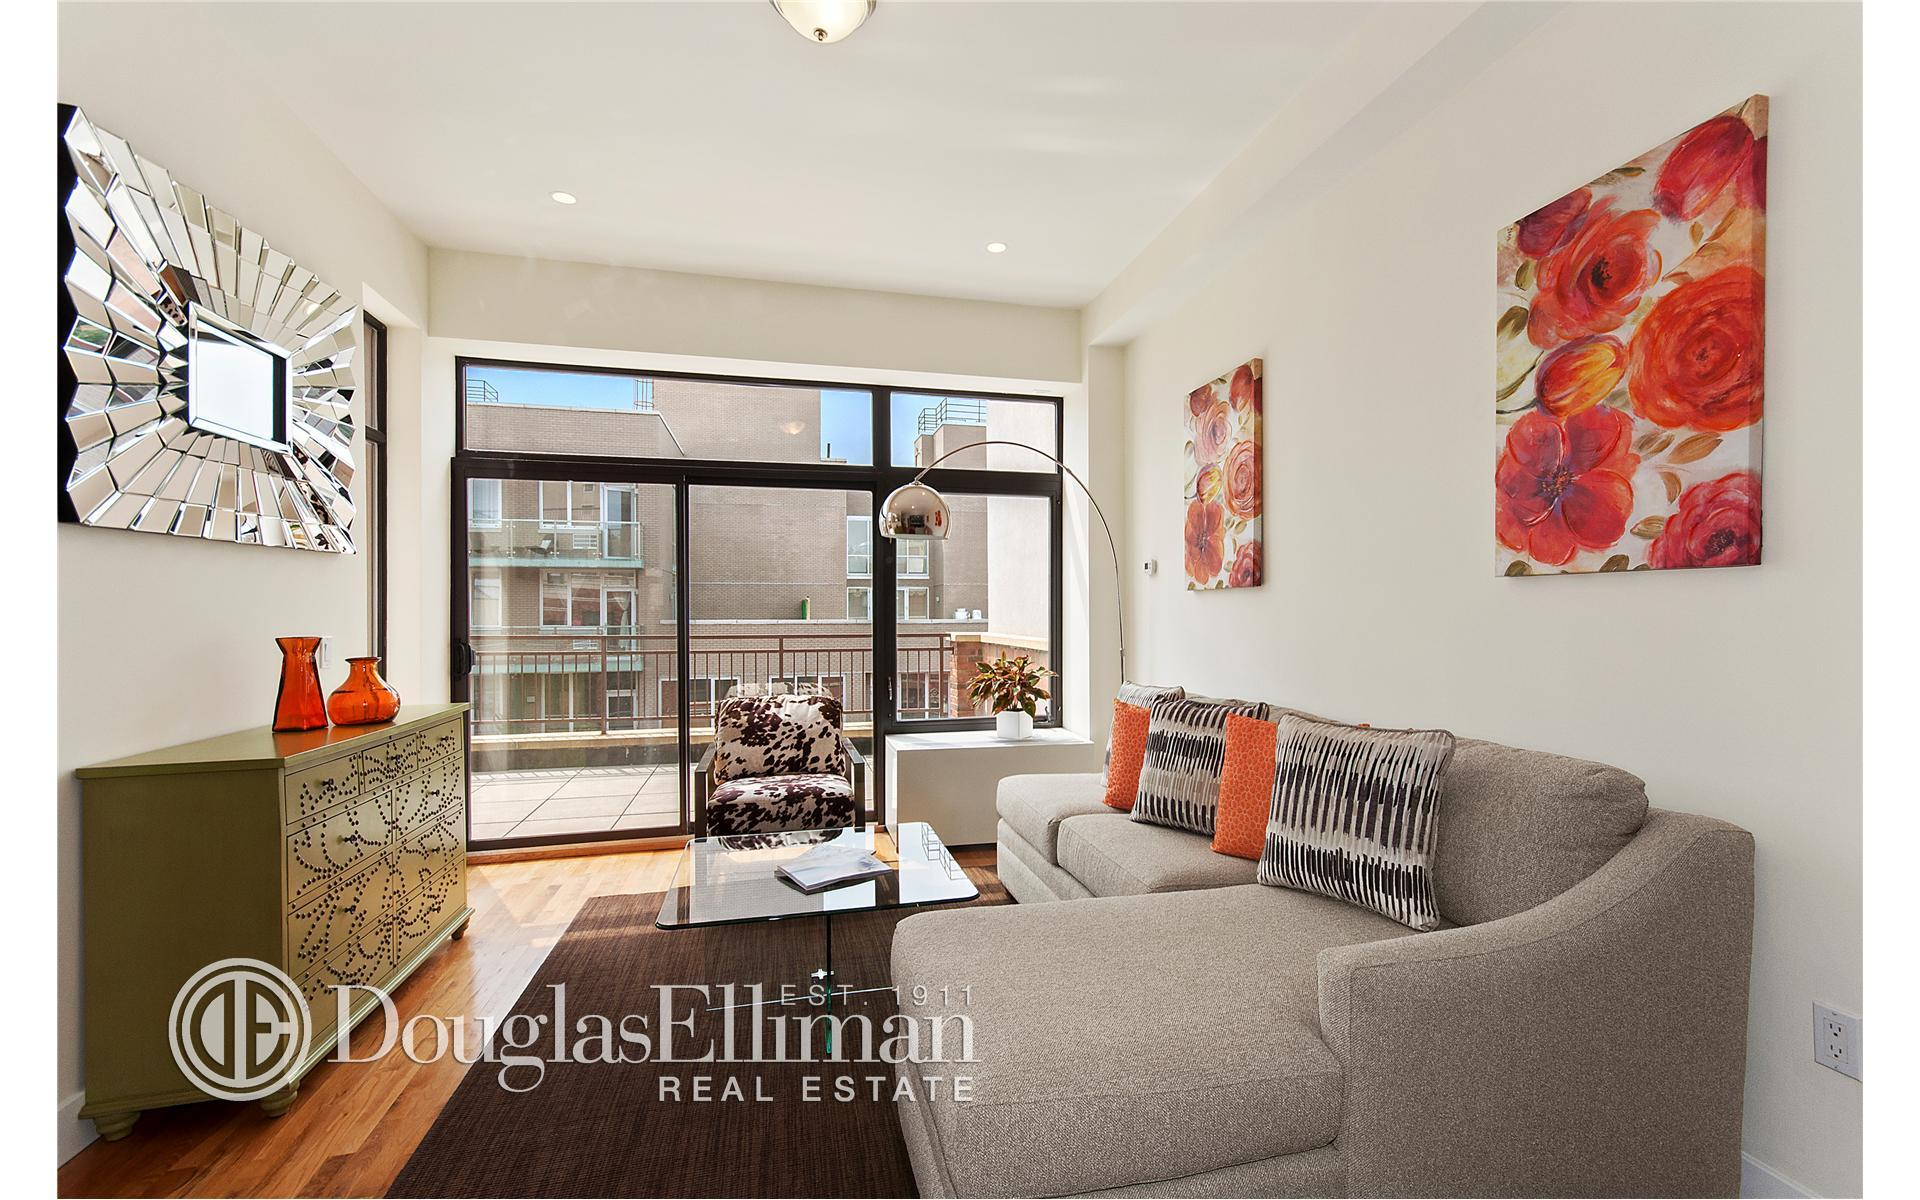 Condominium for Sale at CLARION UPTOWN LOFTS CONDOMINI, Clarion Uptown Lofts Condomini, 225 East 111th Street New York, New York 10029 United States